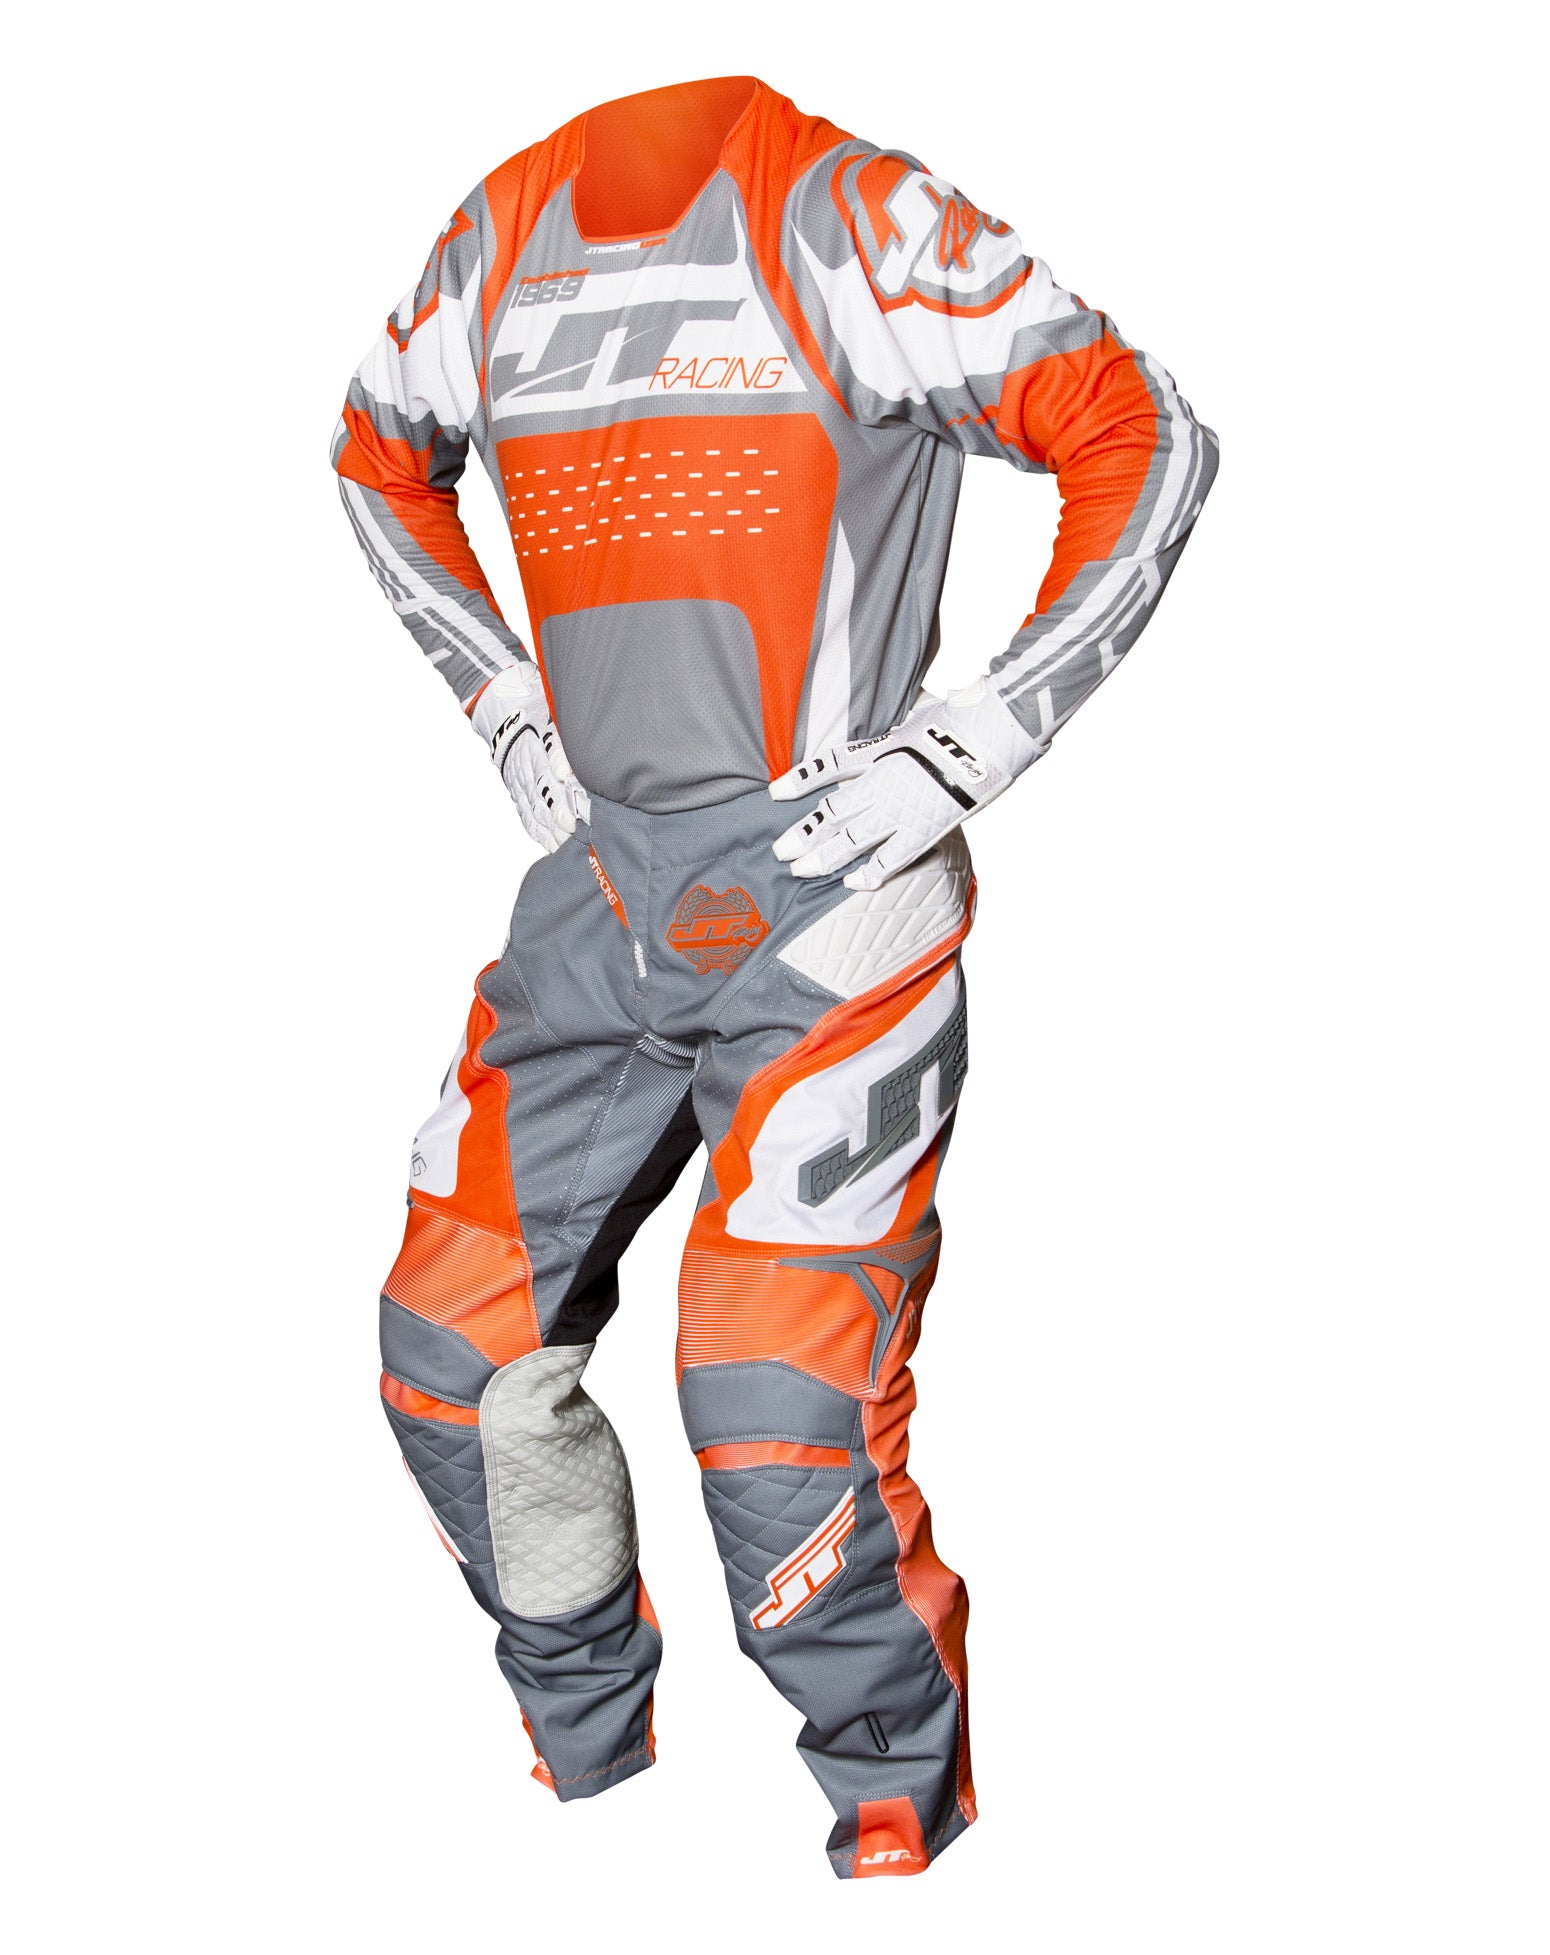 JT RACING USA-2017 ProTek Trophy pants, Grey/Orange/White